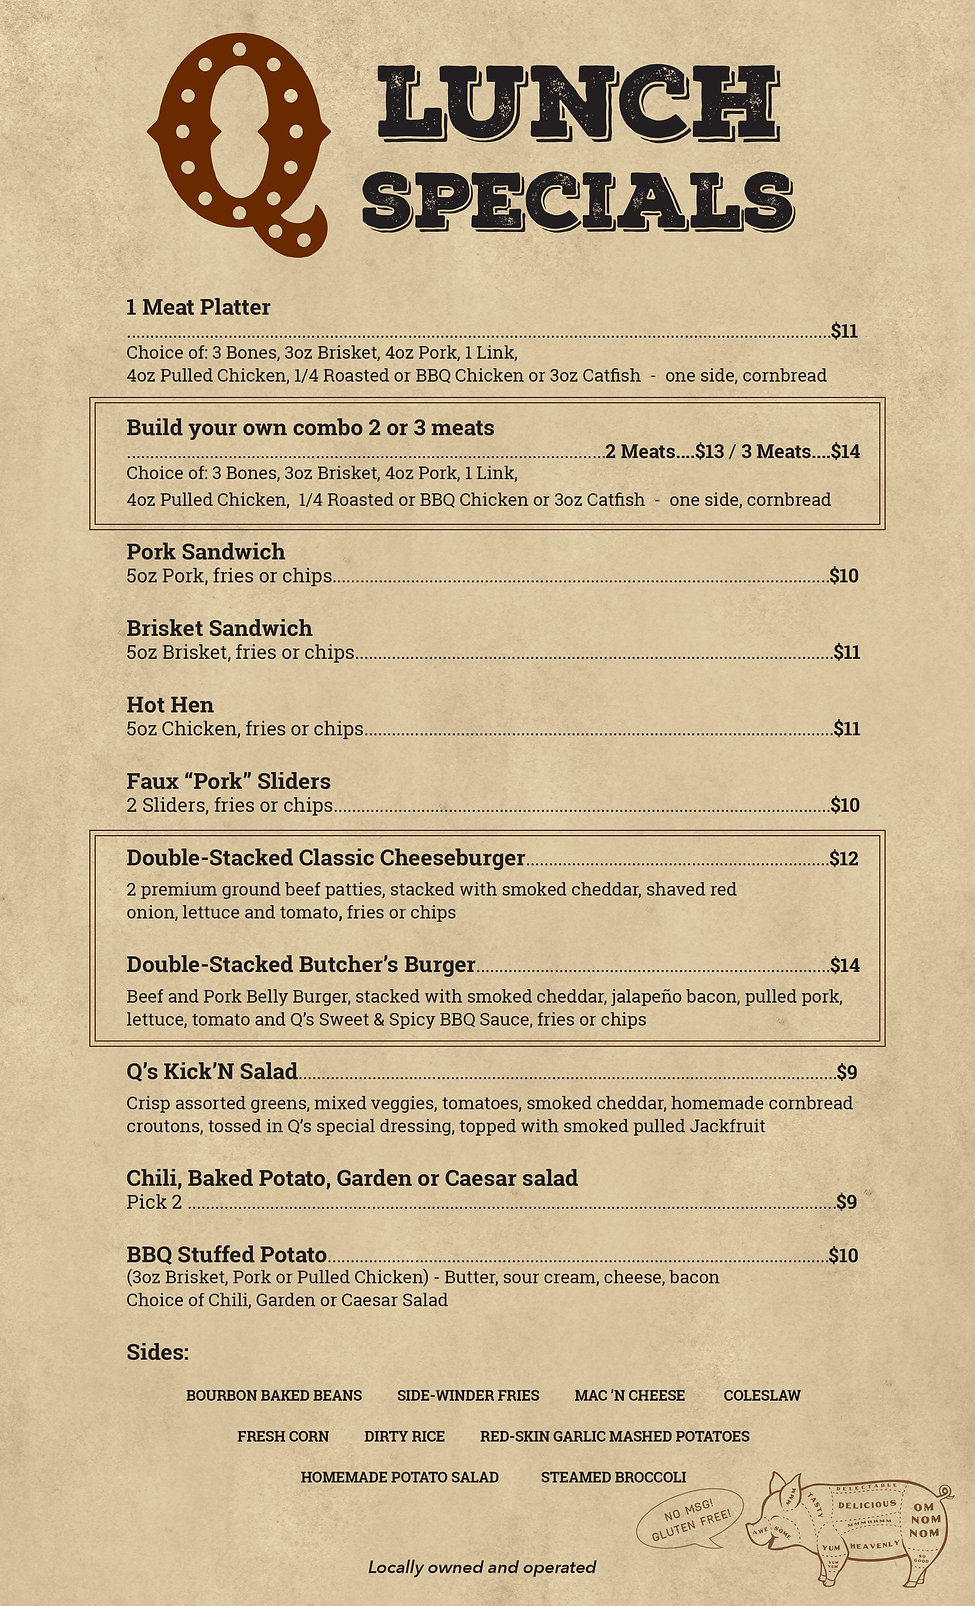 LunchMenu-1 copy.jpg